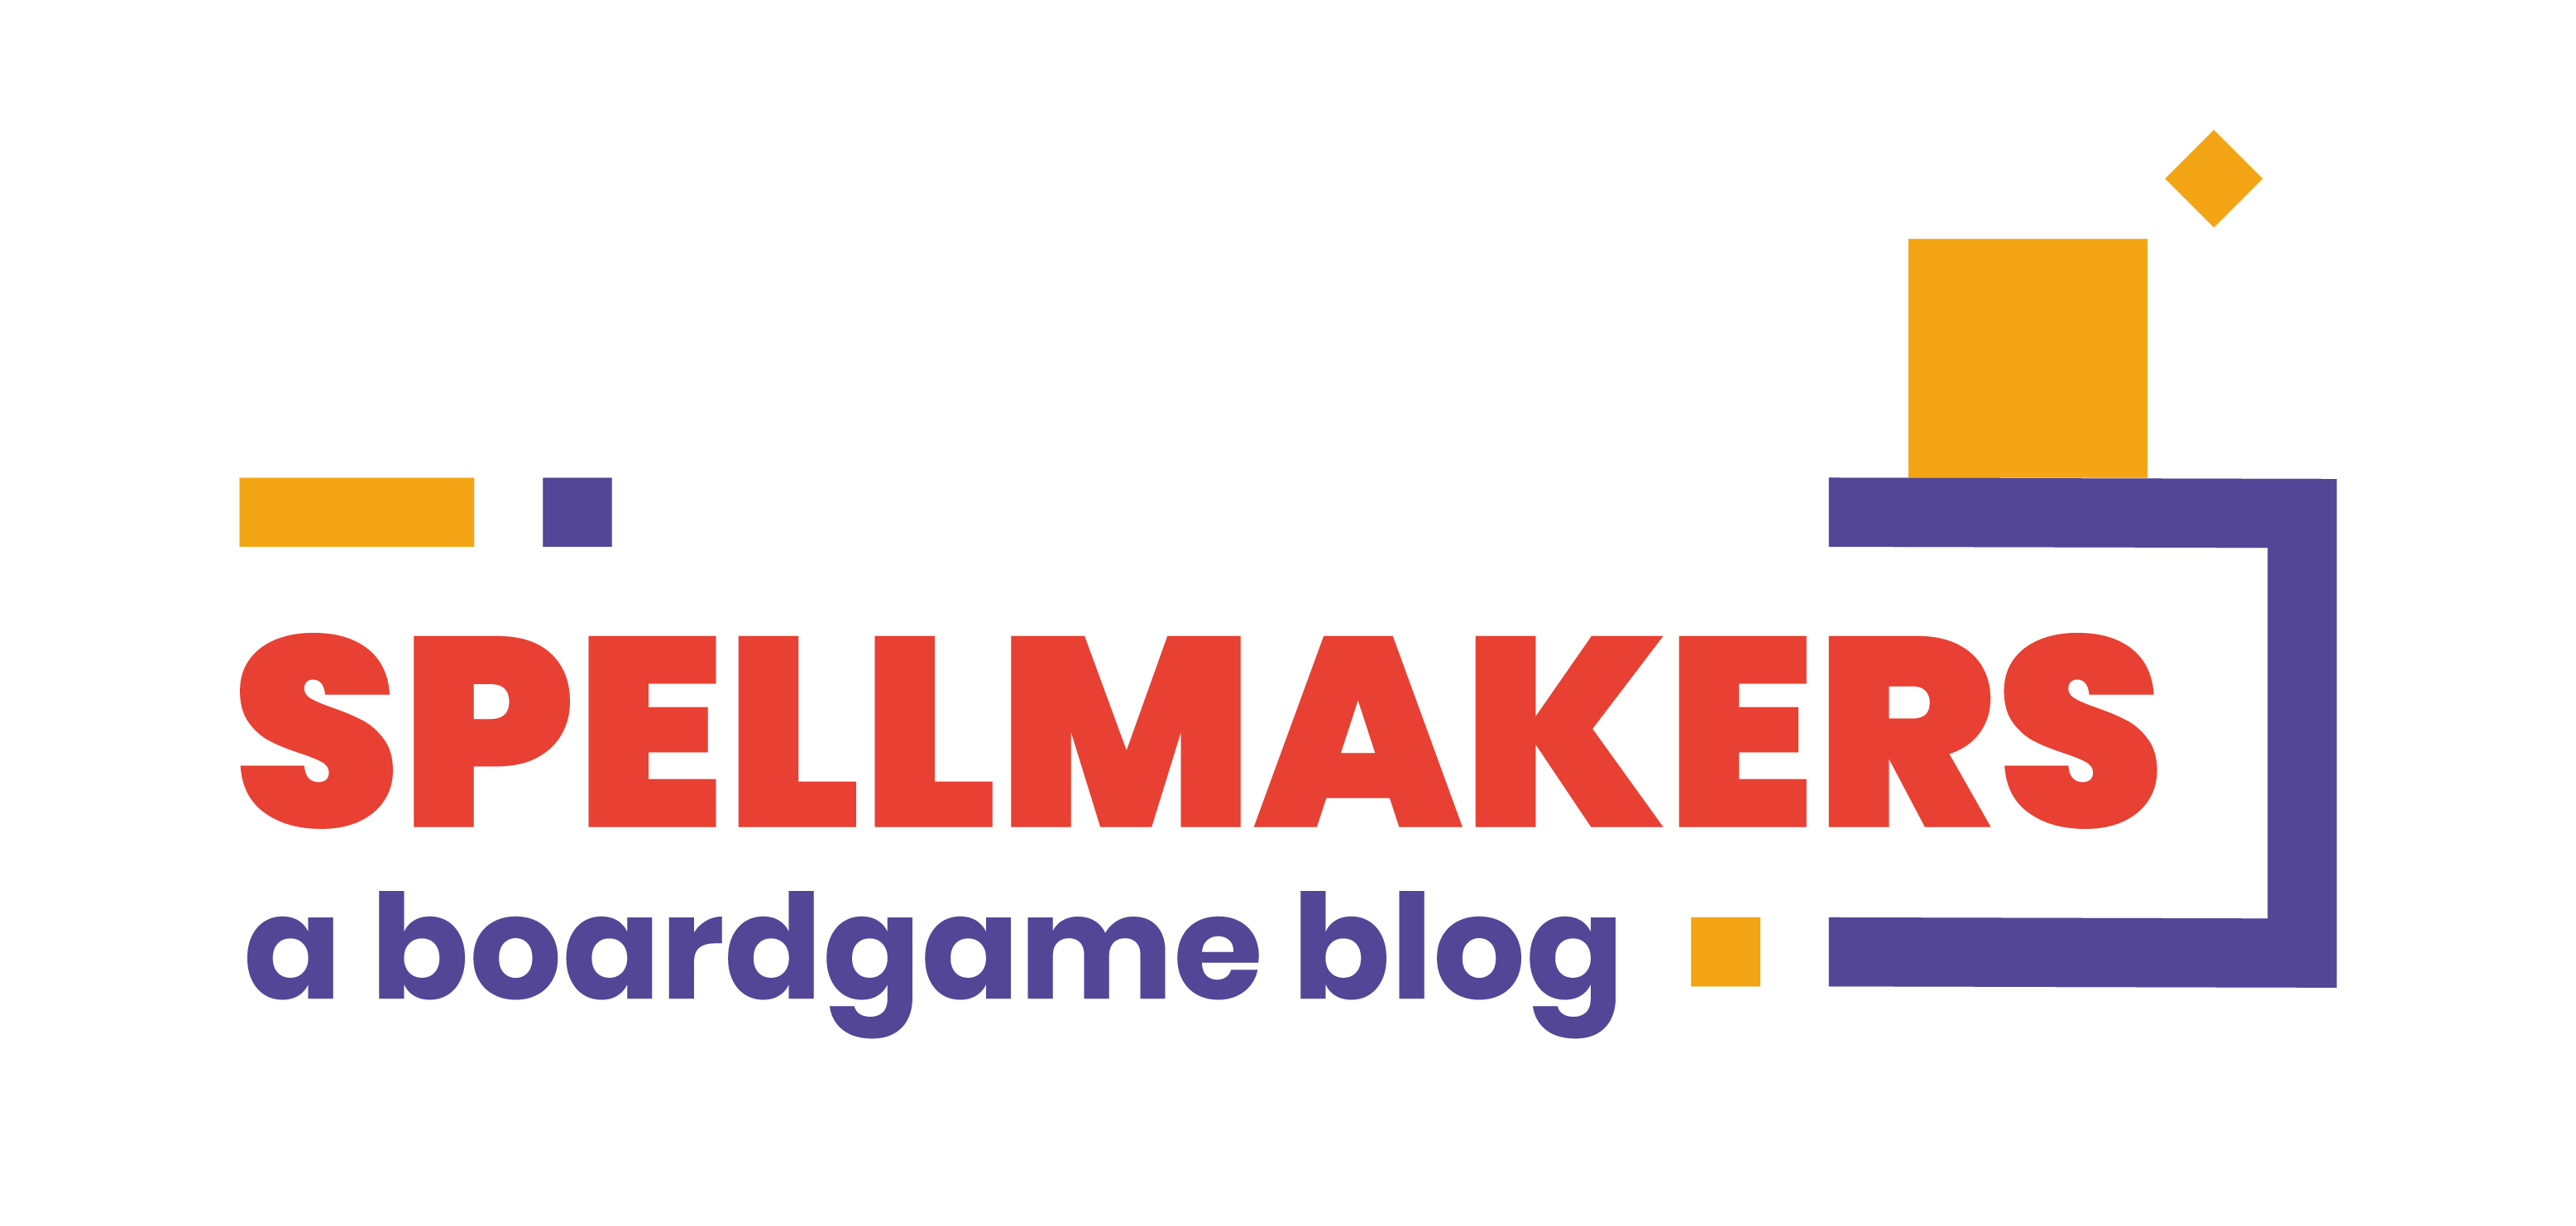 The Spellmakers Blog